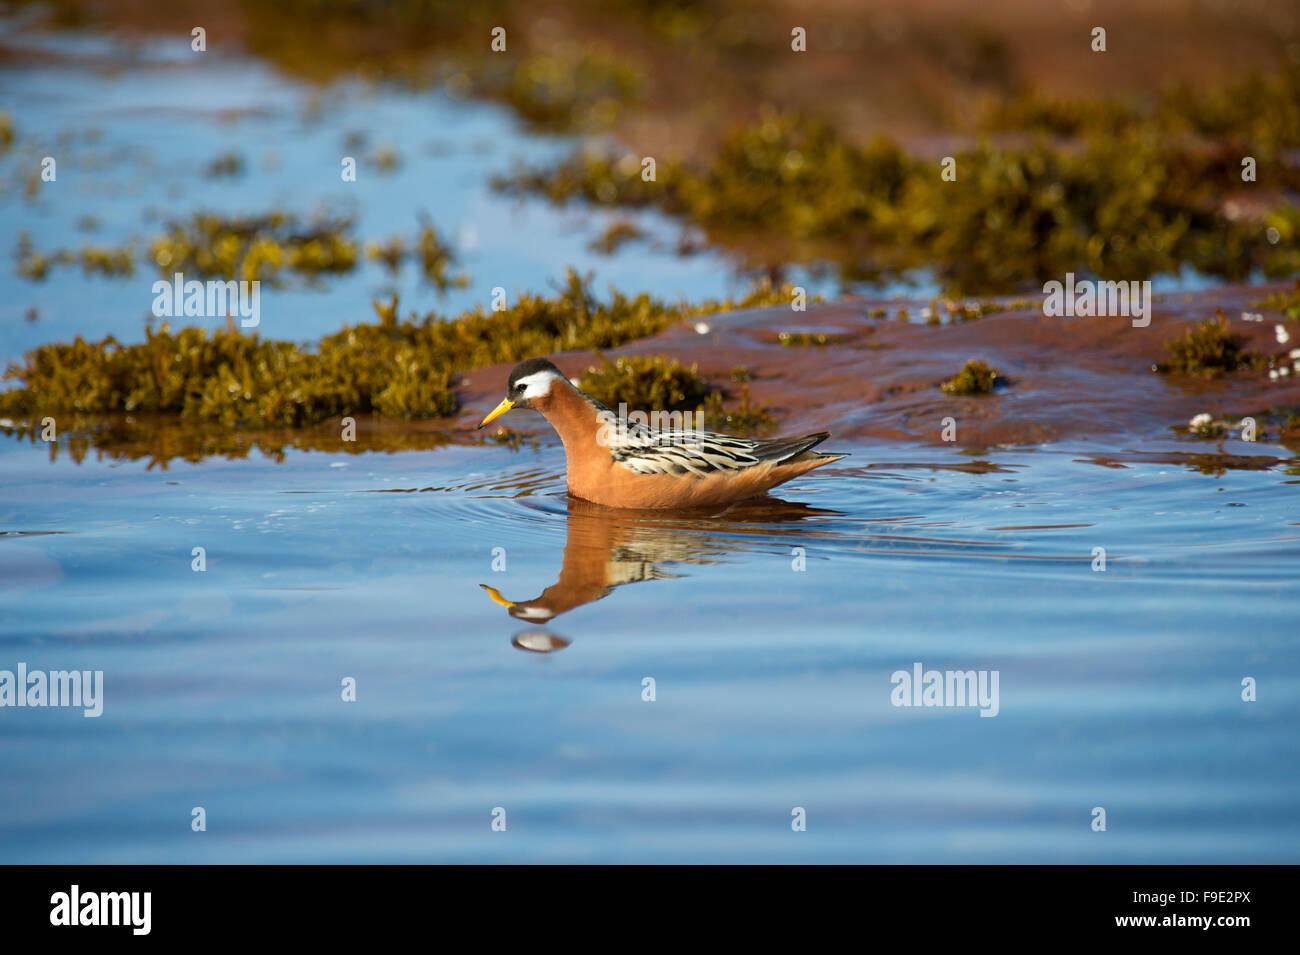 A Red Phalarope aka Grey Phalarope (Phalaropus fulicarius) during summe breeding season in the fjords of Spitsbergen, - Stock Image